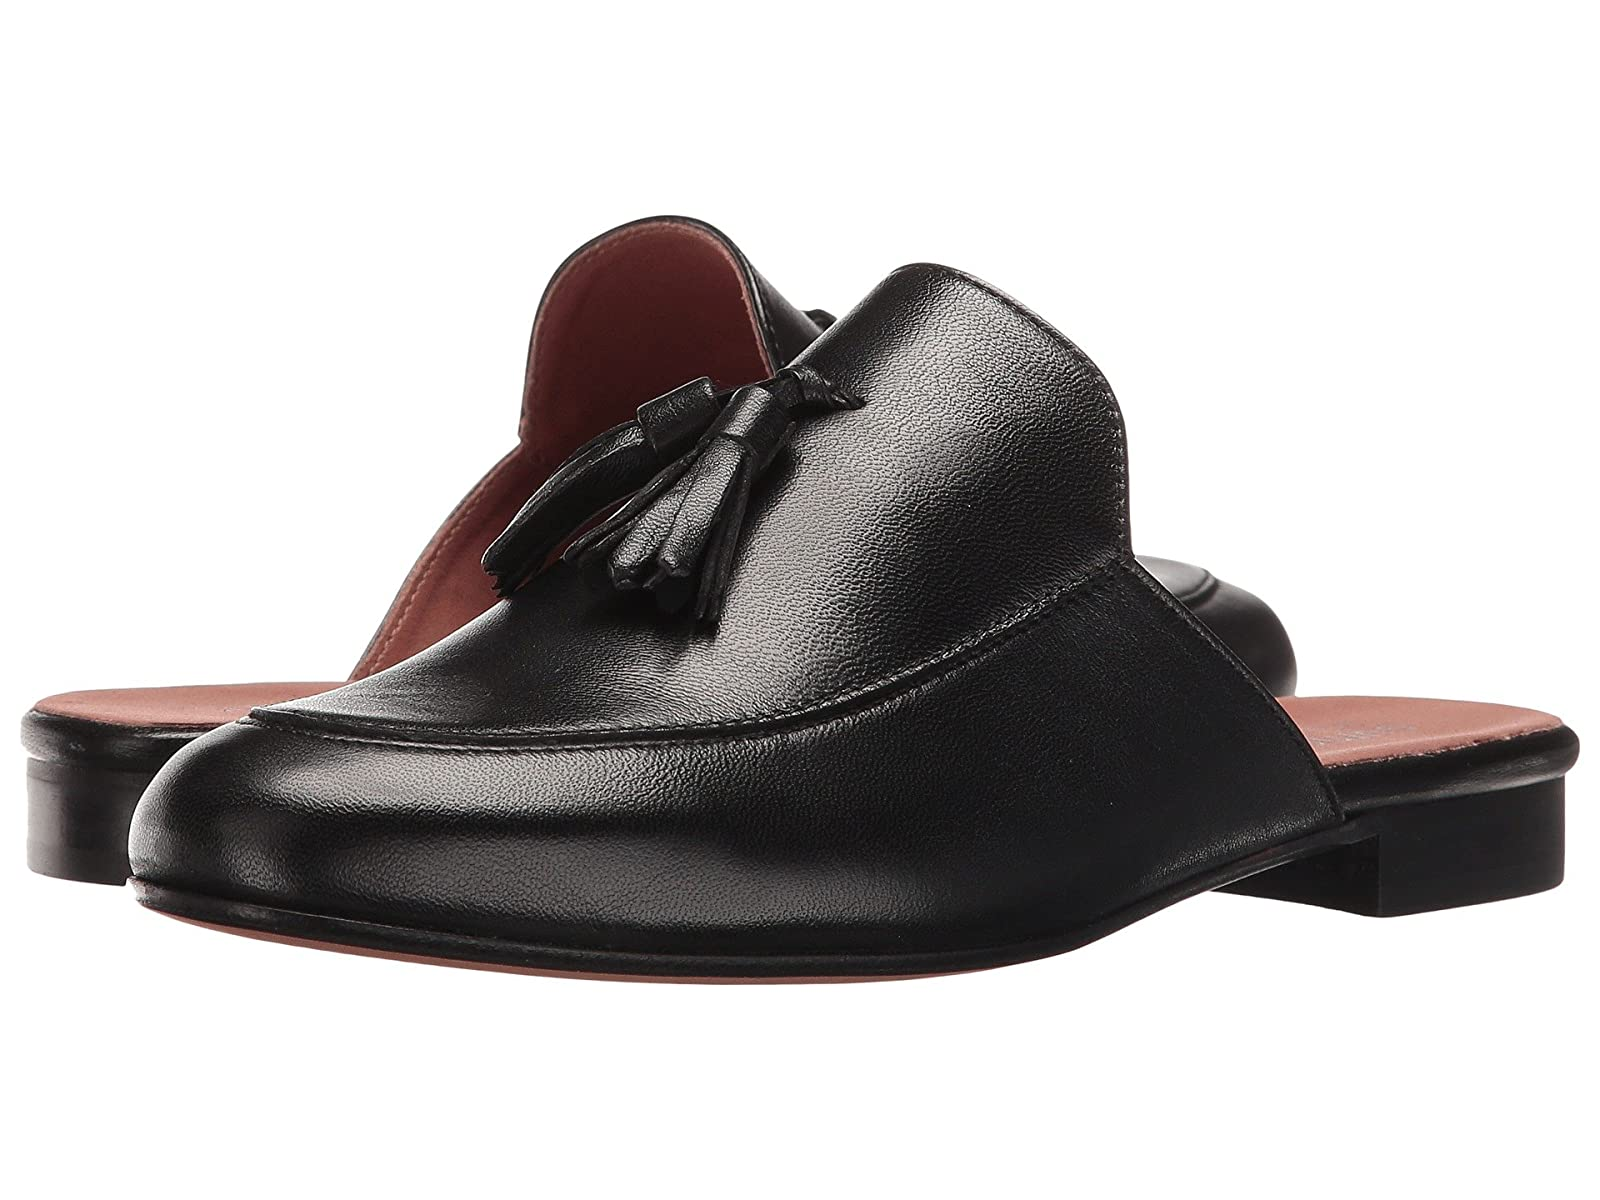 Summit by White Mountain AnelieCheap and distinctive eye-catching shoes